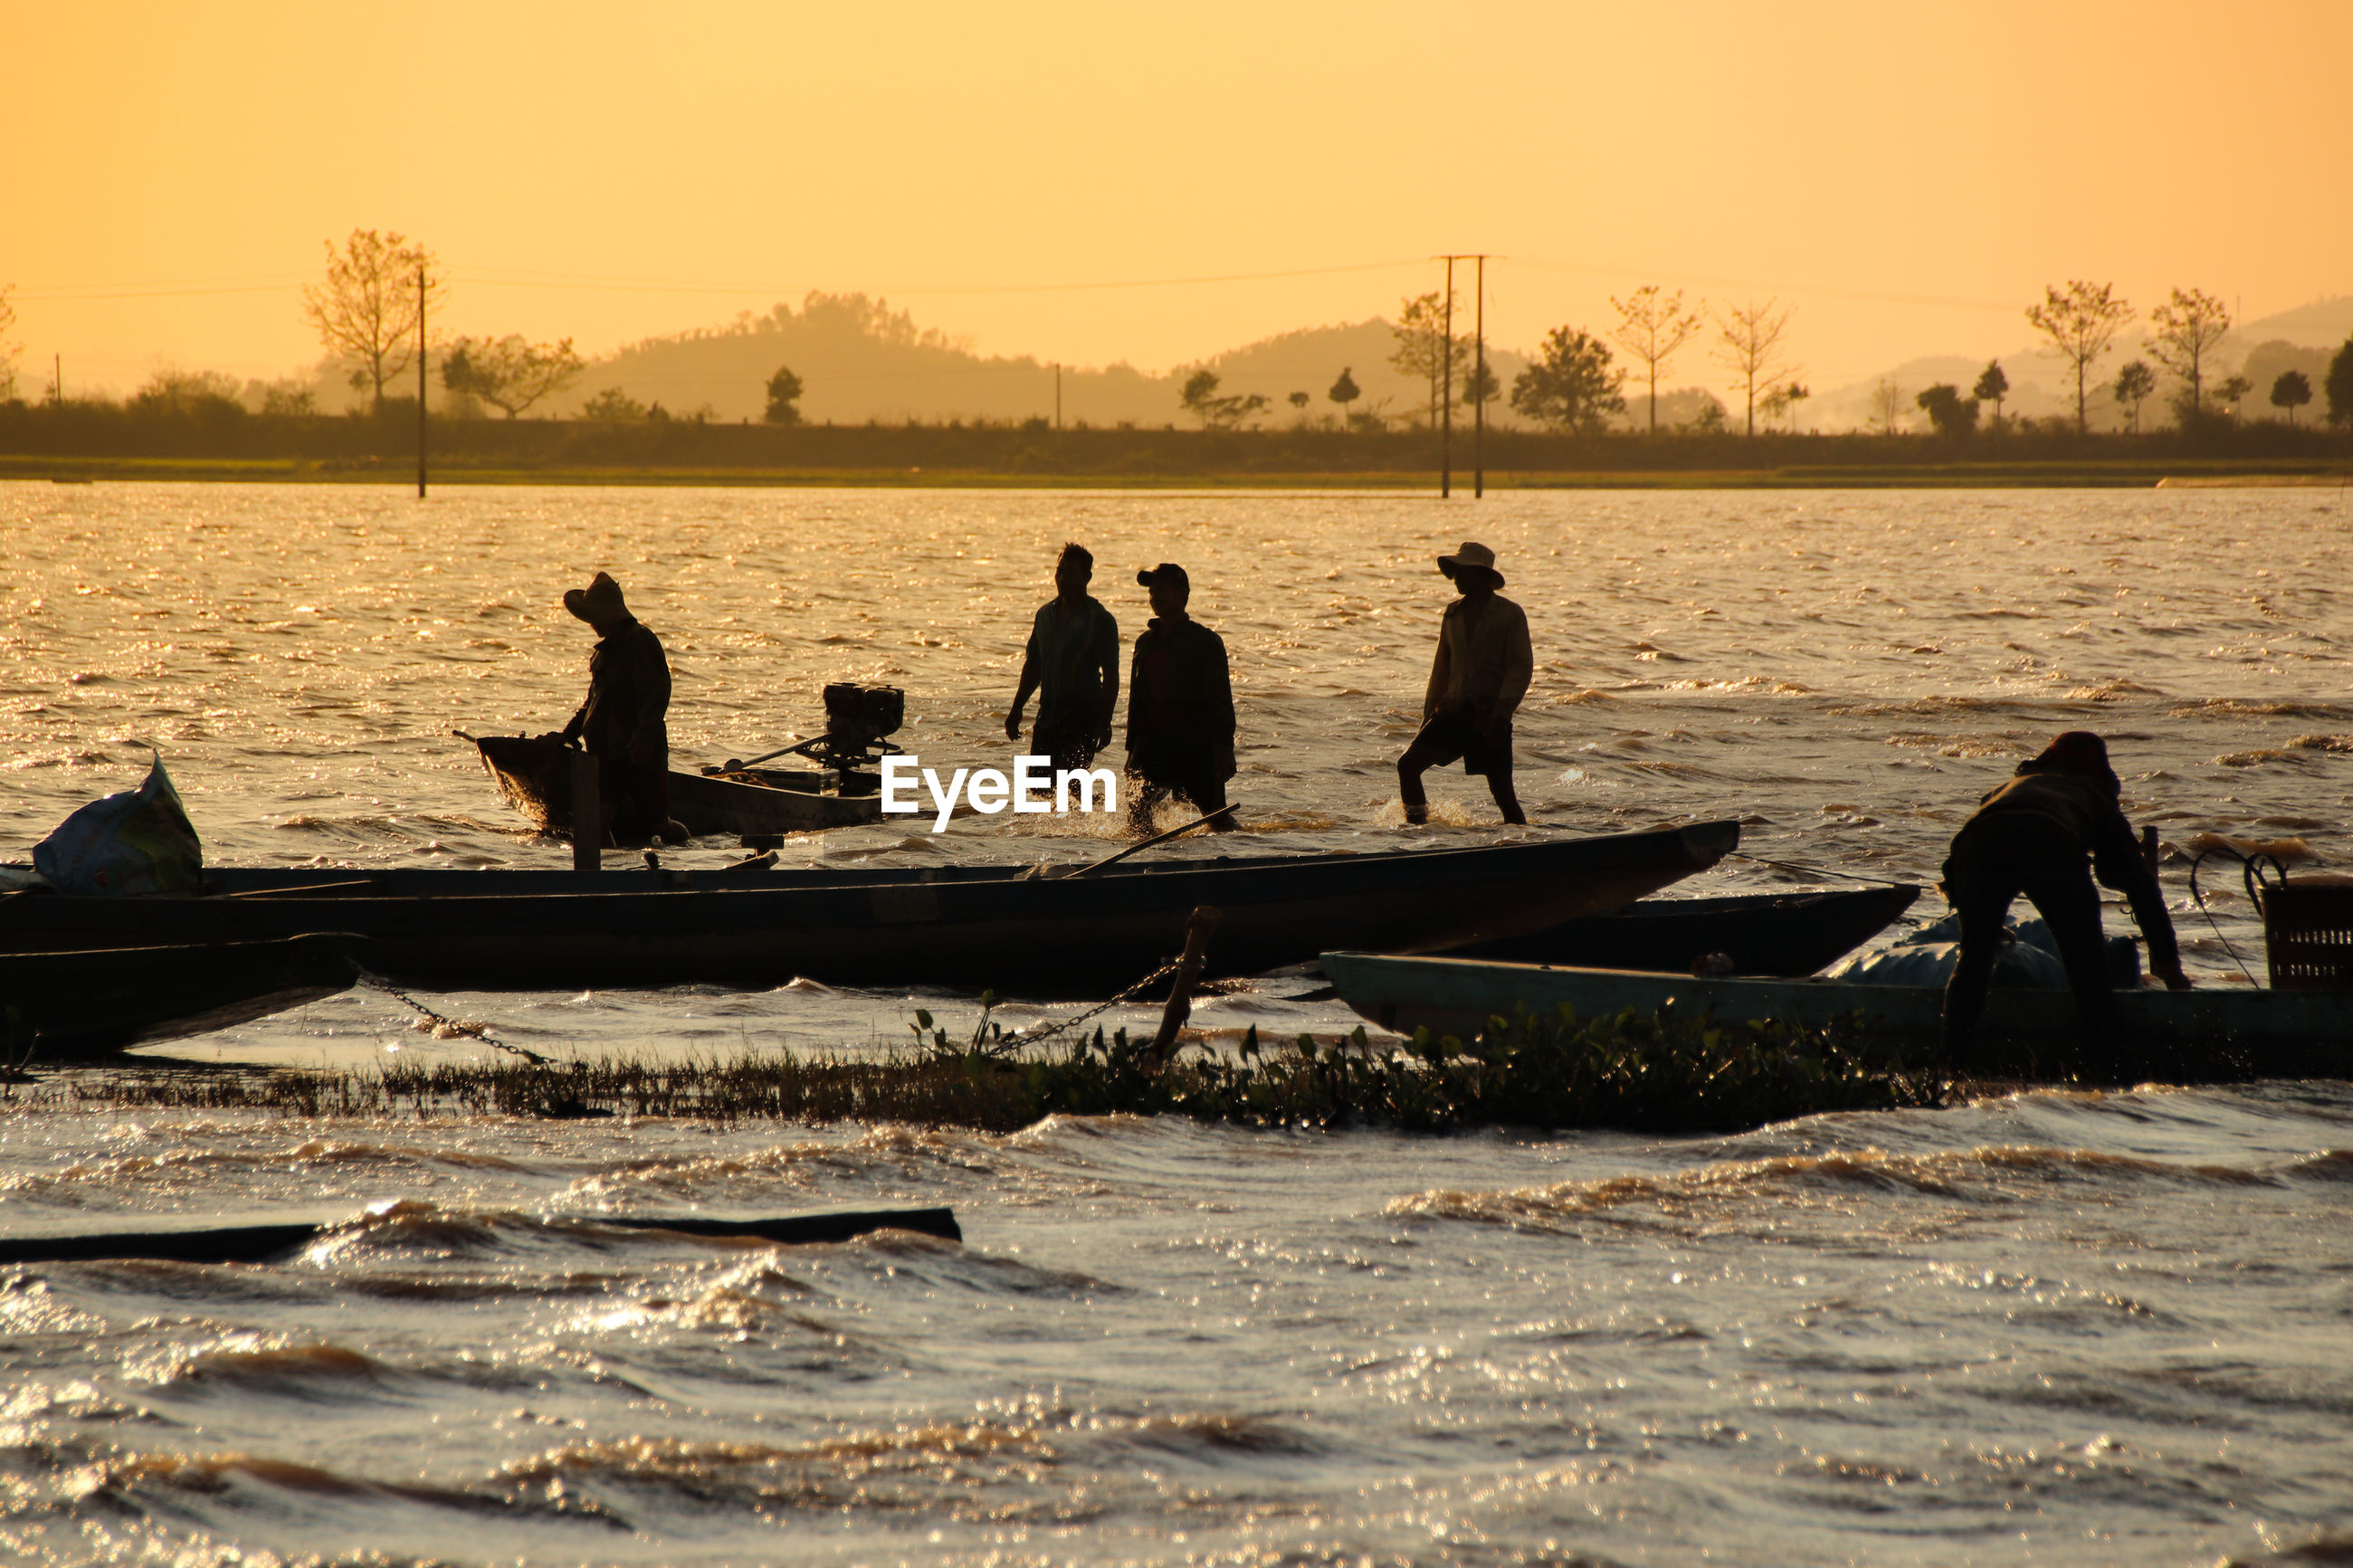 Silhouette fishermen fishing in lake against clear sky during sunset